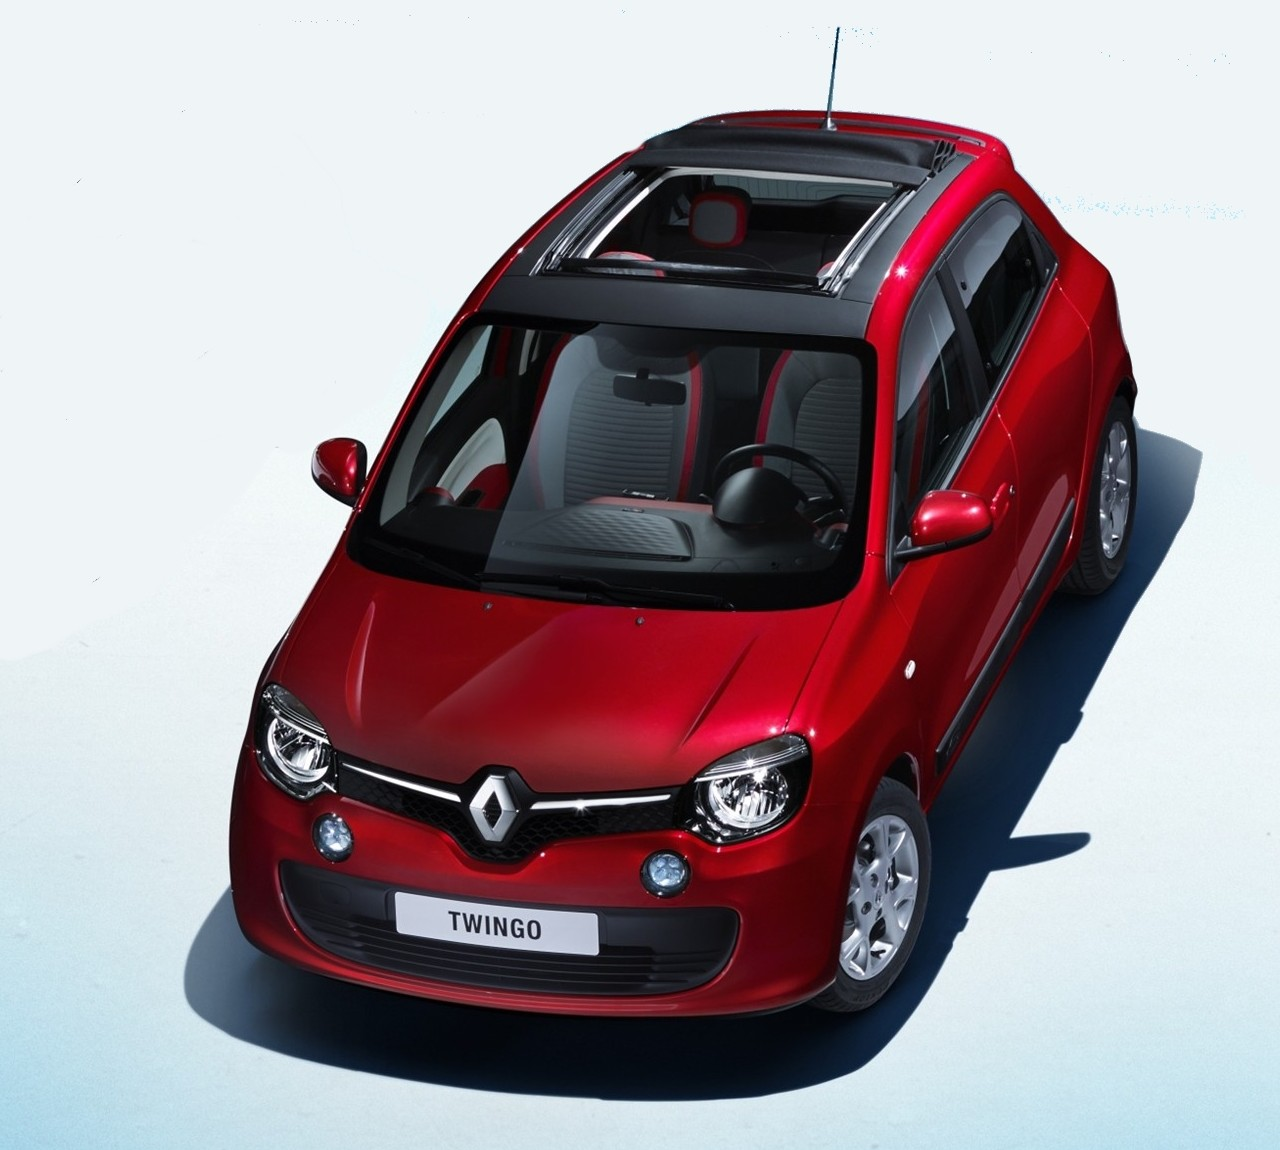 2014 renault twingo iii x07 page 17. Black Bedroom Furniture Sets. Home Design Ideas